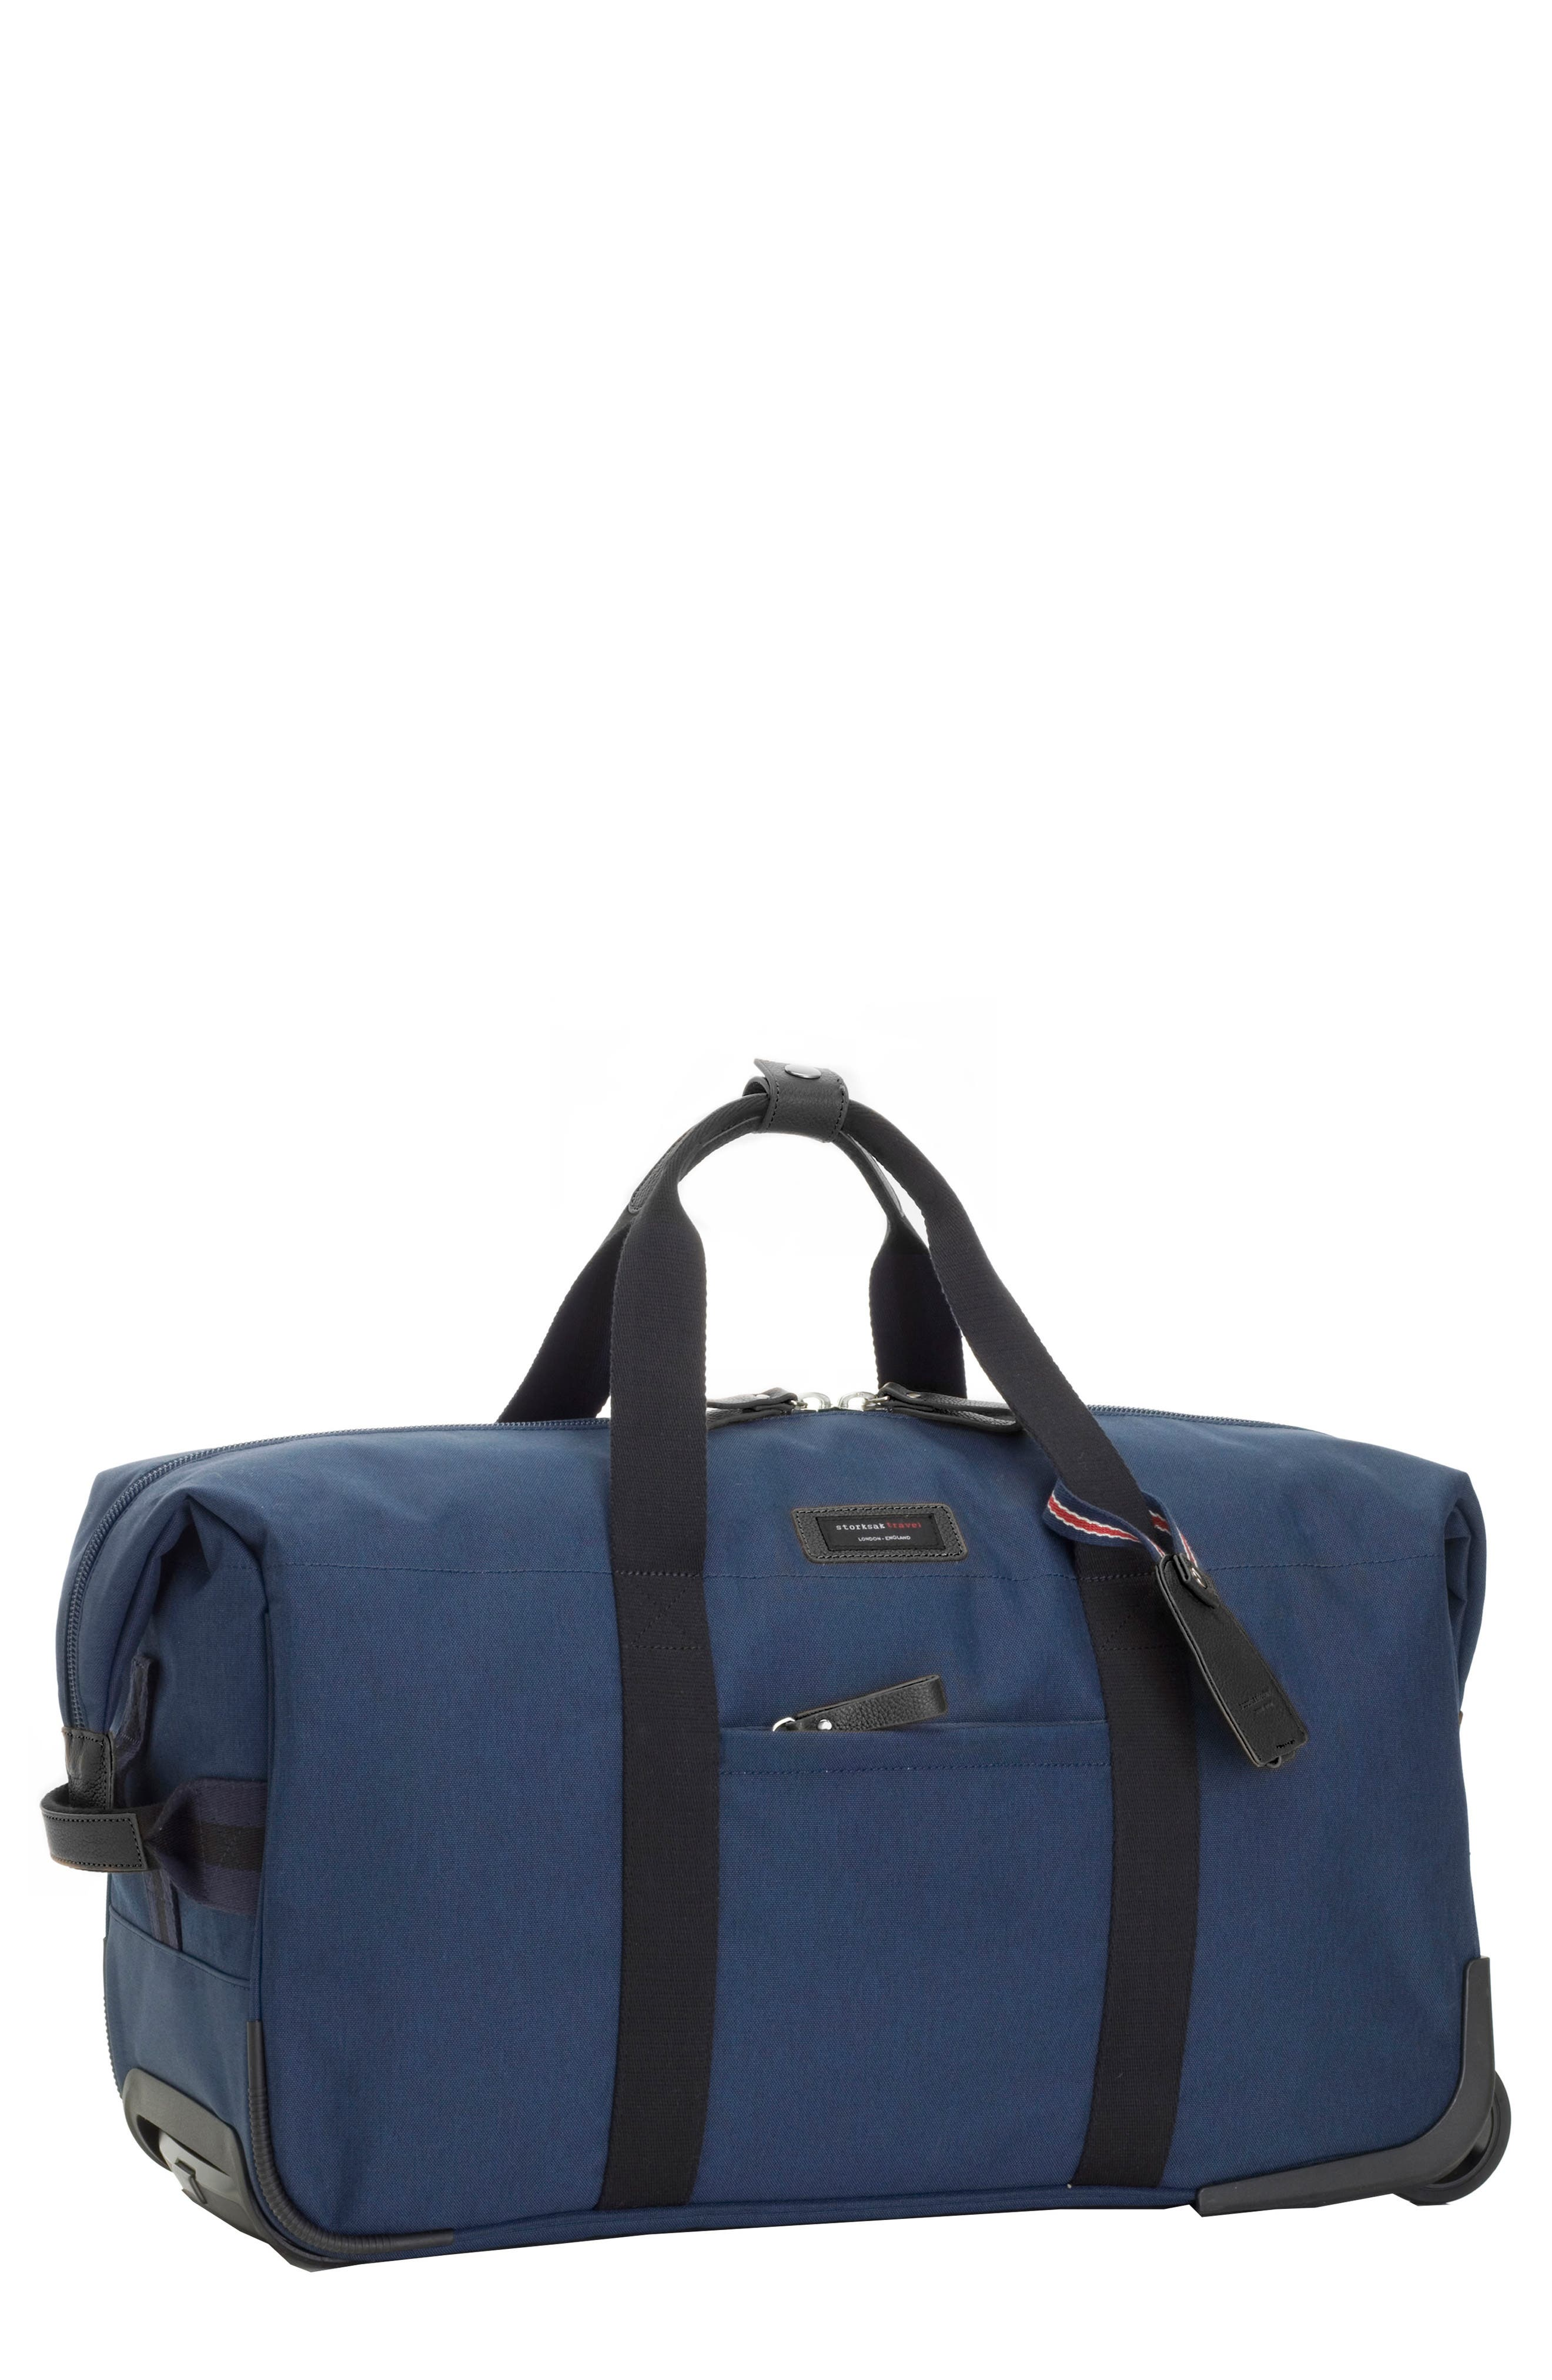 Cabin Wheeled Carry-On with Hanging Organizer,                         Main,                         color, Navy